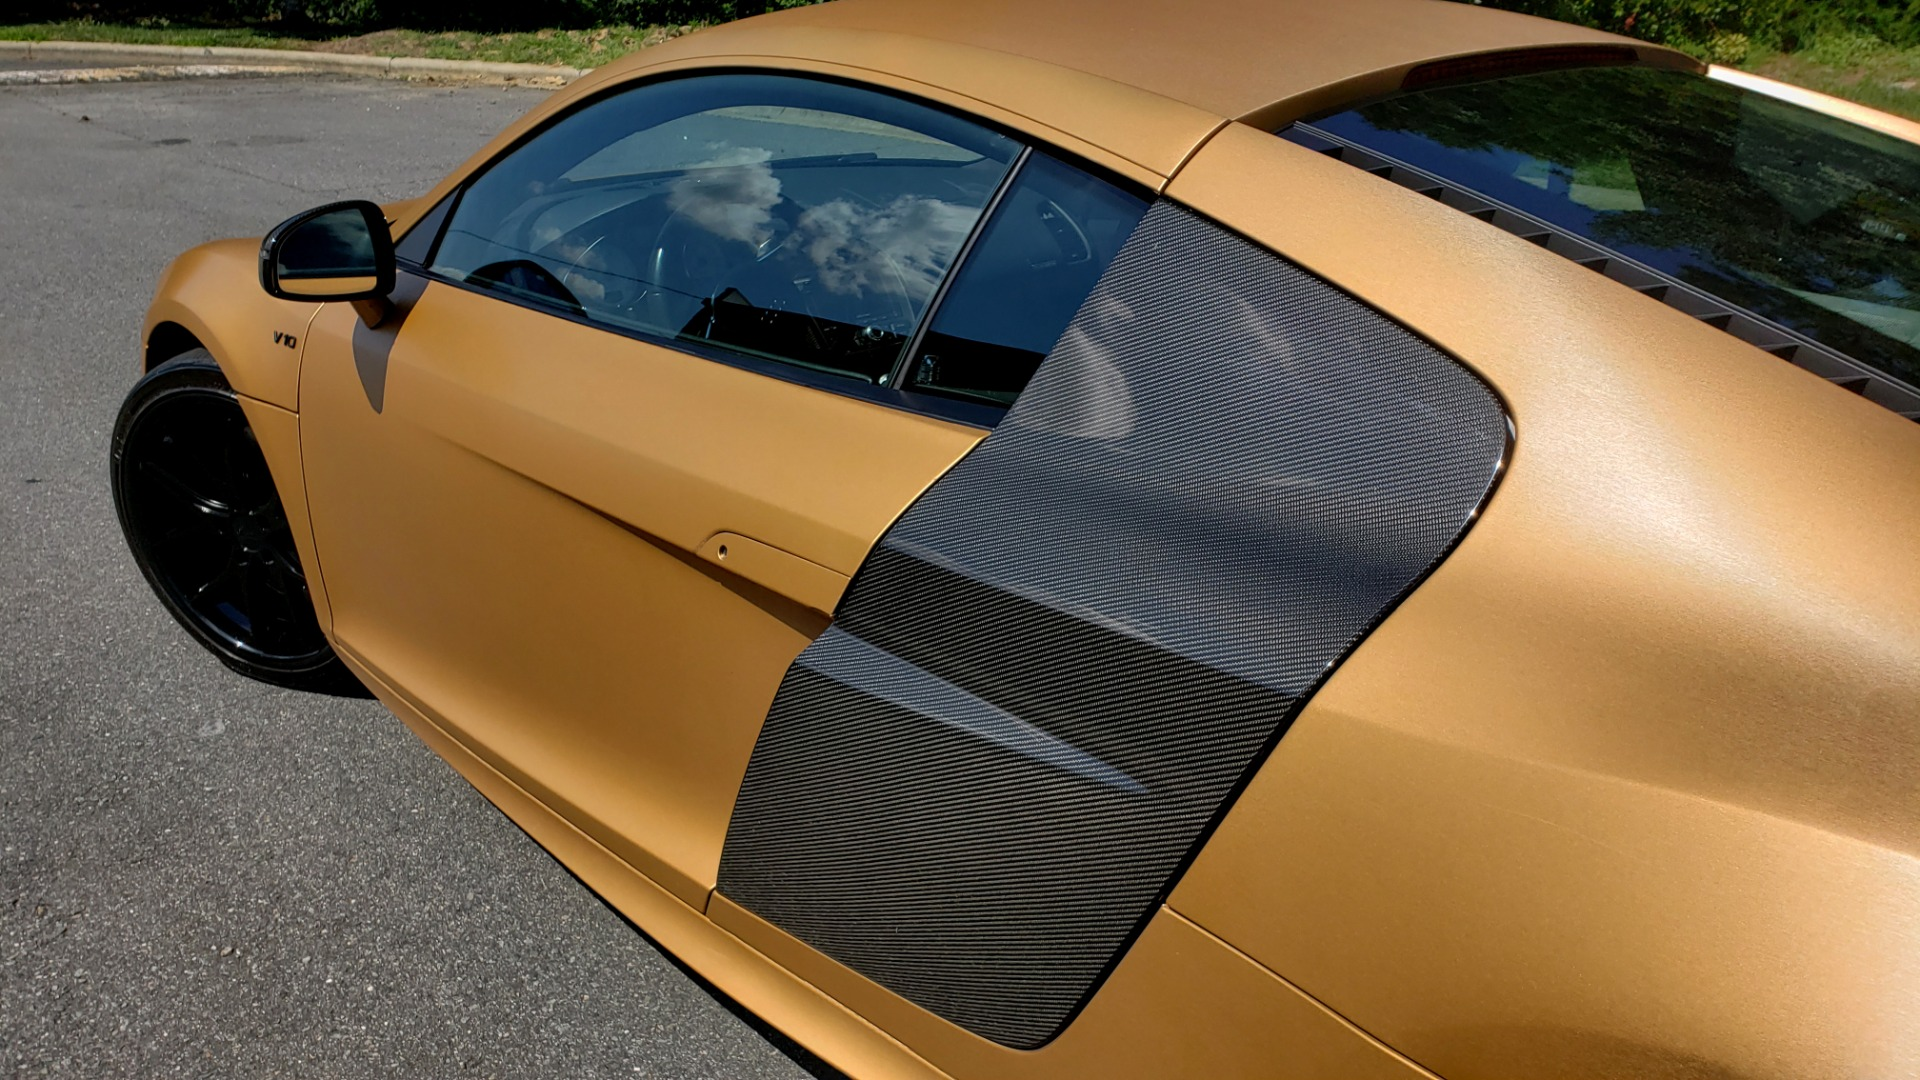 Used 2012 Audi R8 V10 5.2L / CUST WRAP BRUSHED BRONZE / NAV / B&O SOUND / CUST 19IN WHLS for sale $79,999 at Formula Imports in Charlotte NC 28227 6